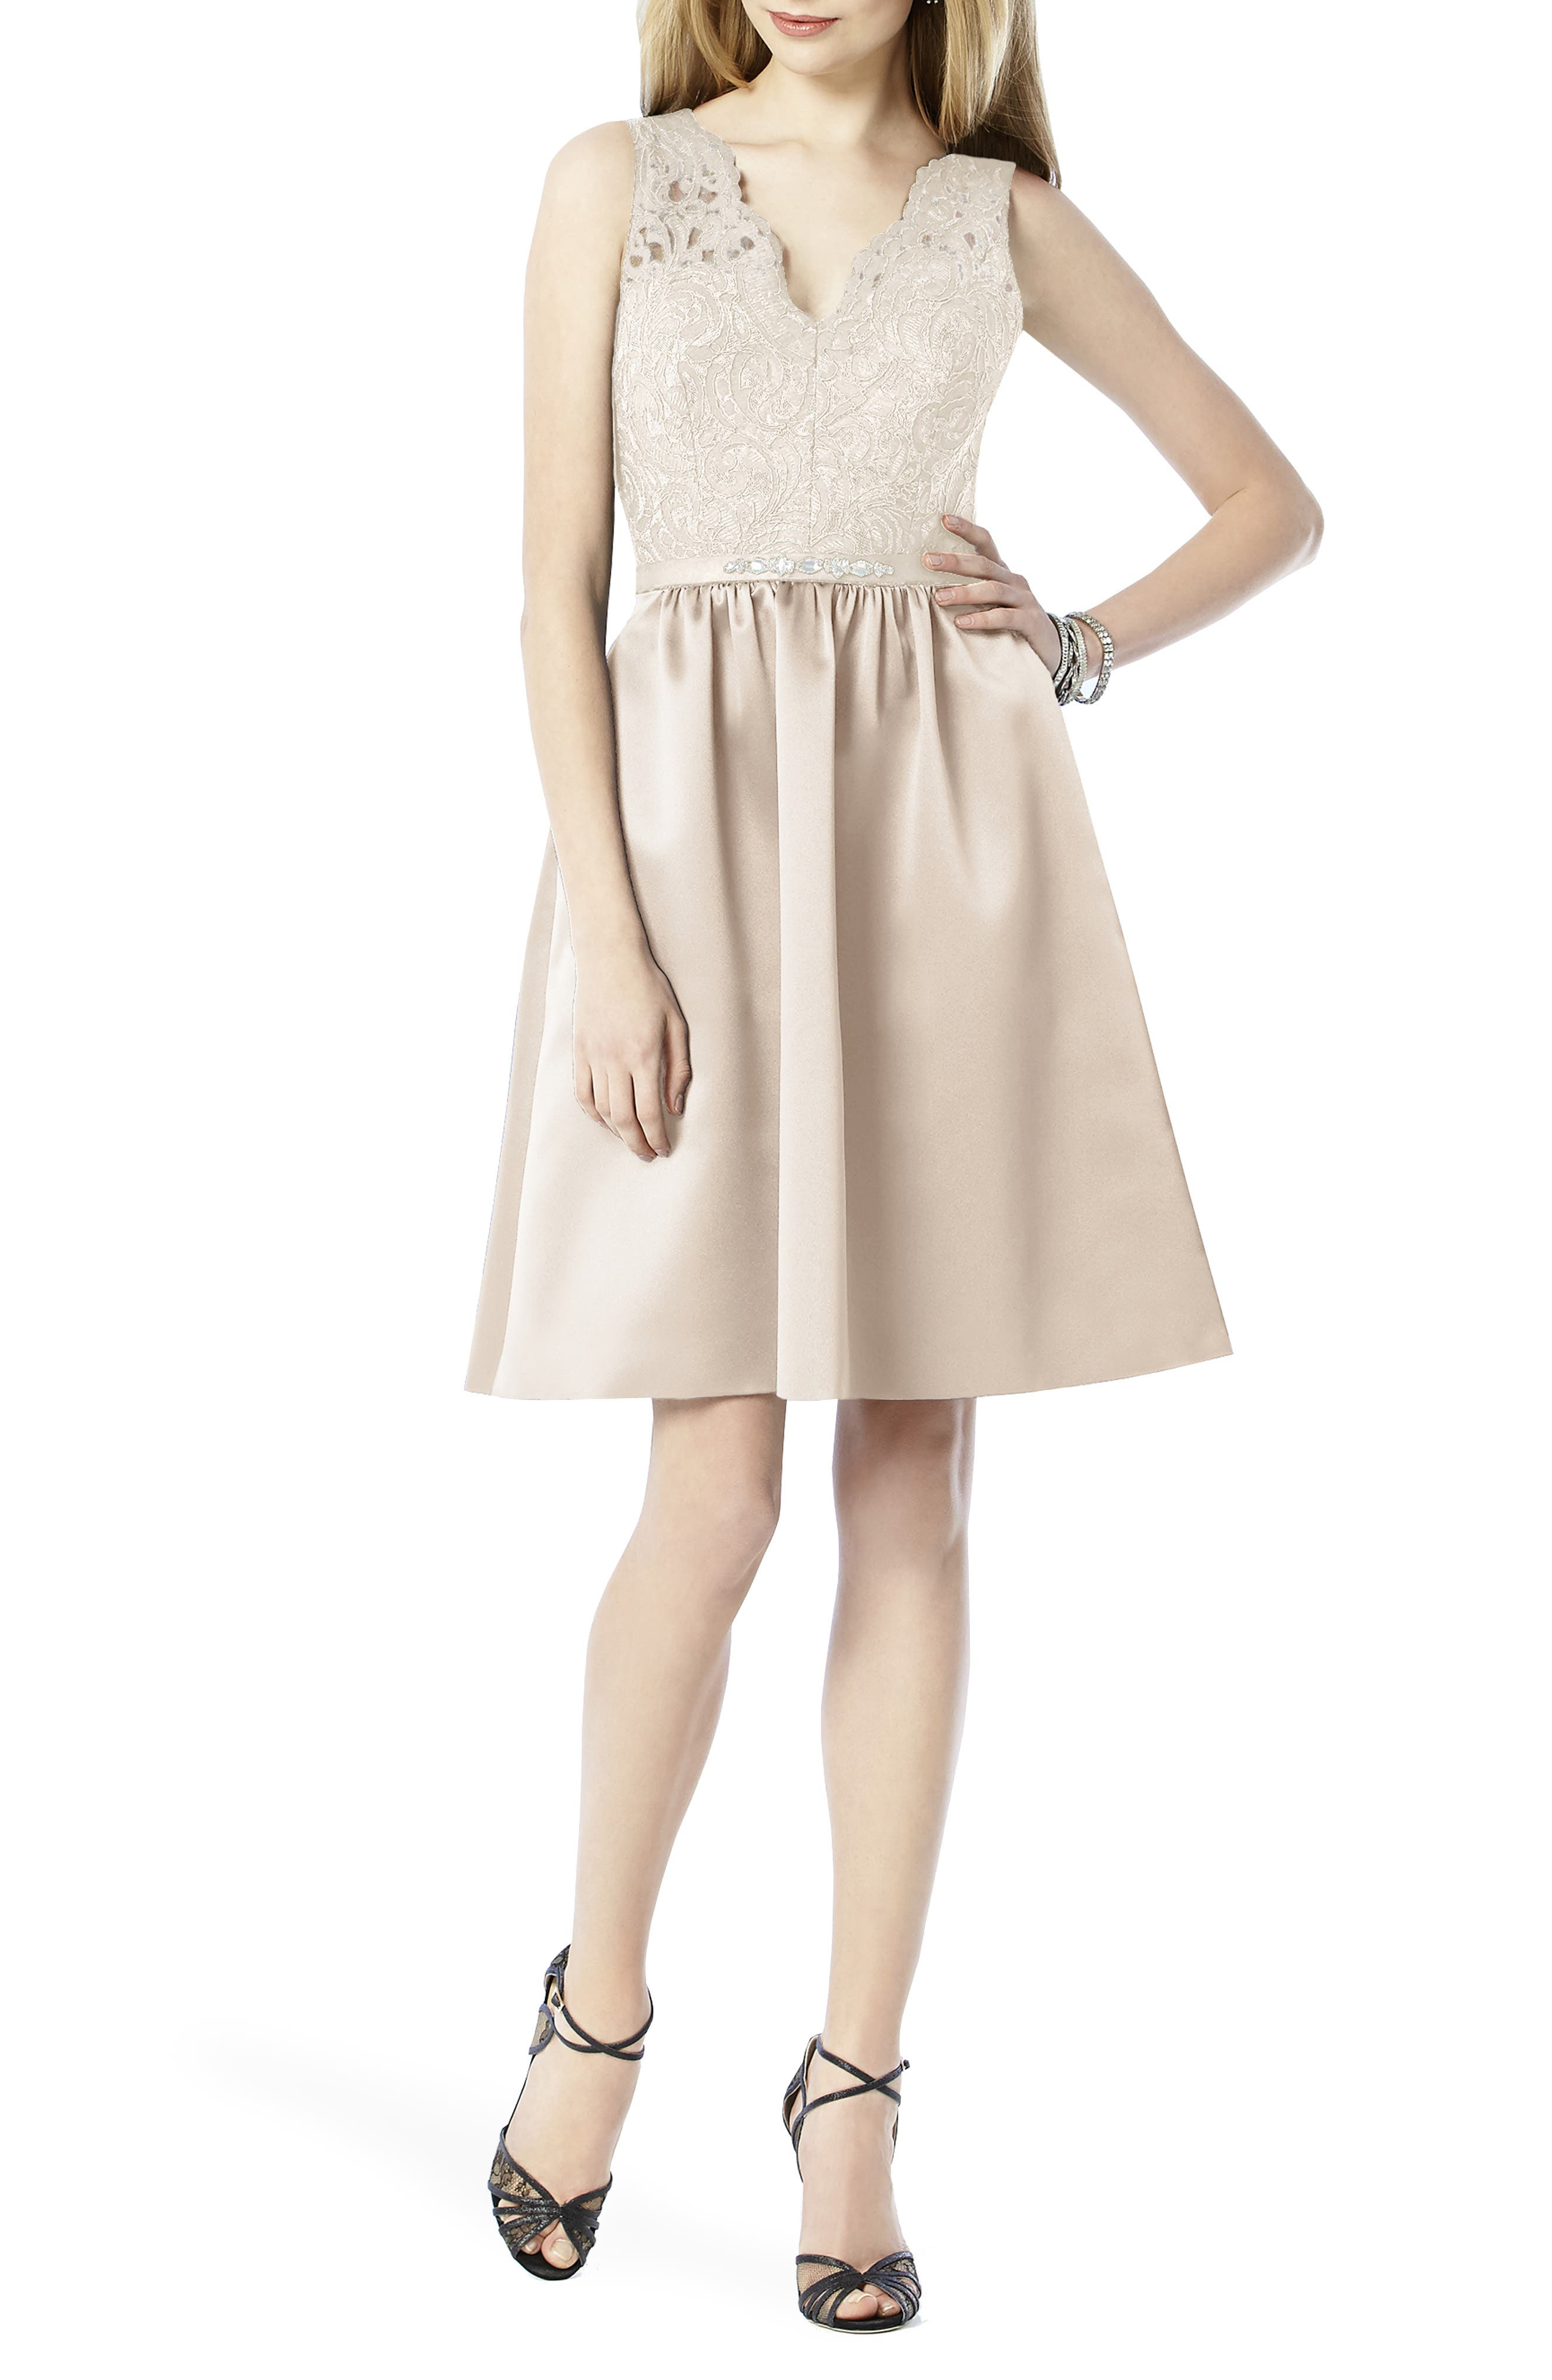 Embellished Lace with Satin Fit & Flare Dress,                             Alternate thumbnail 6, color,                             101